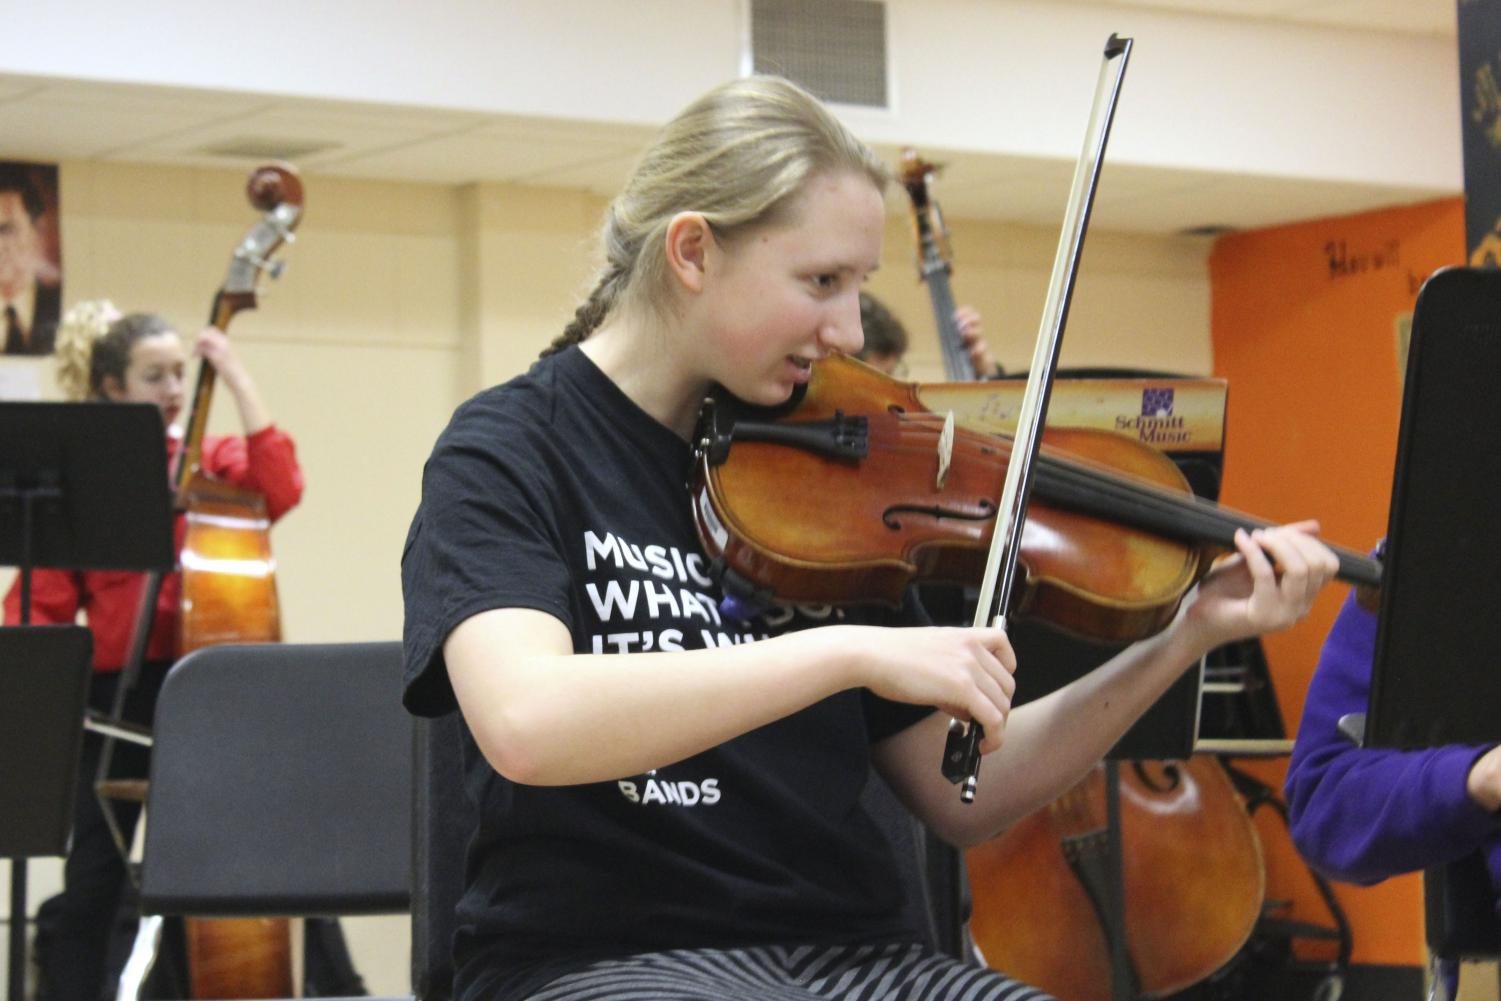 Sophomore Amara Foner plays the viola at Orchestra practice Friday the 15th. This is one of six instruments that she plays as well as composing the score for a musical.